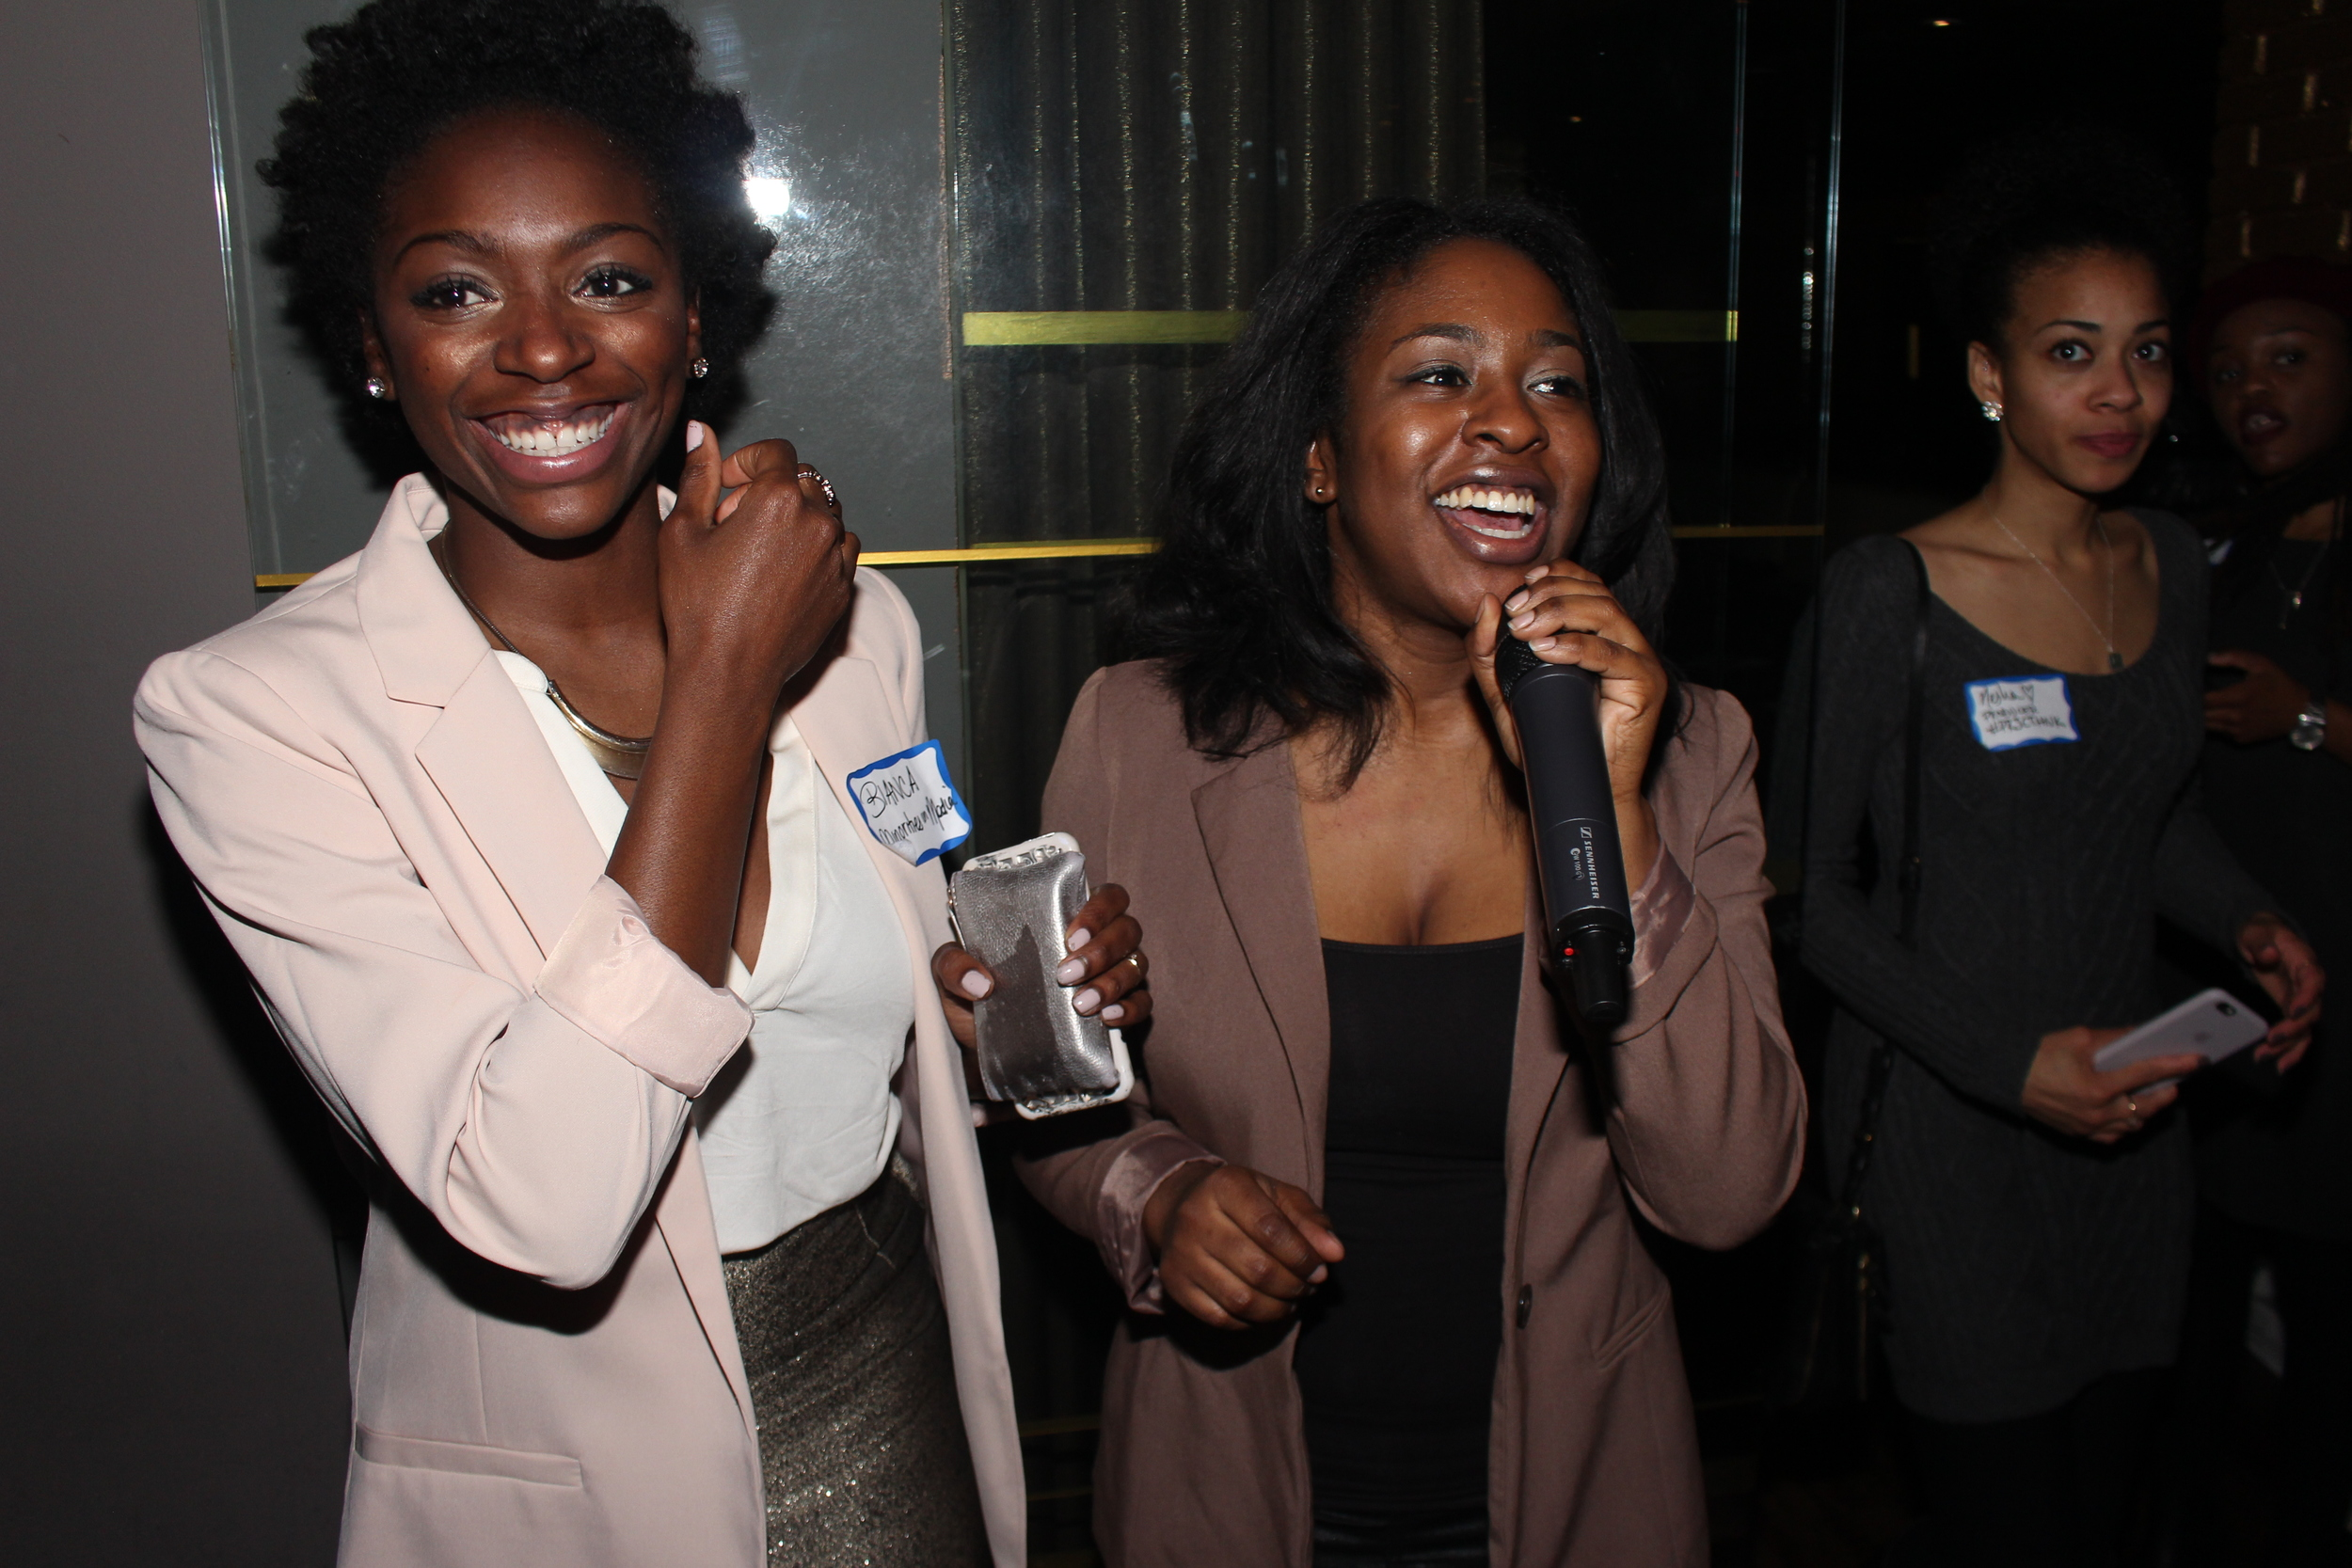 BIanca Jeanty and Netta Dobbins of MiMConnect